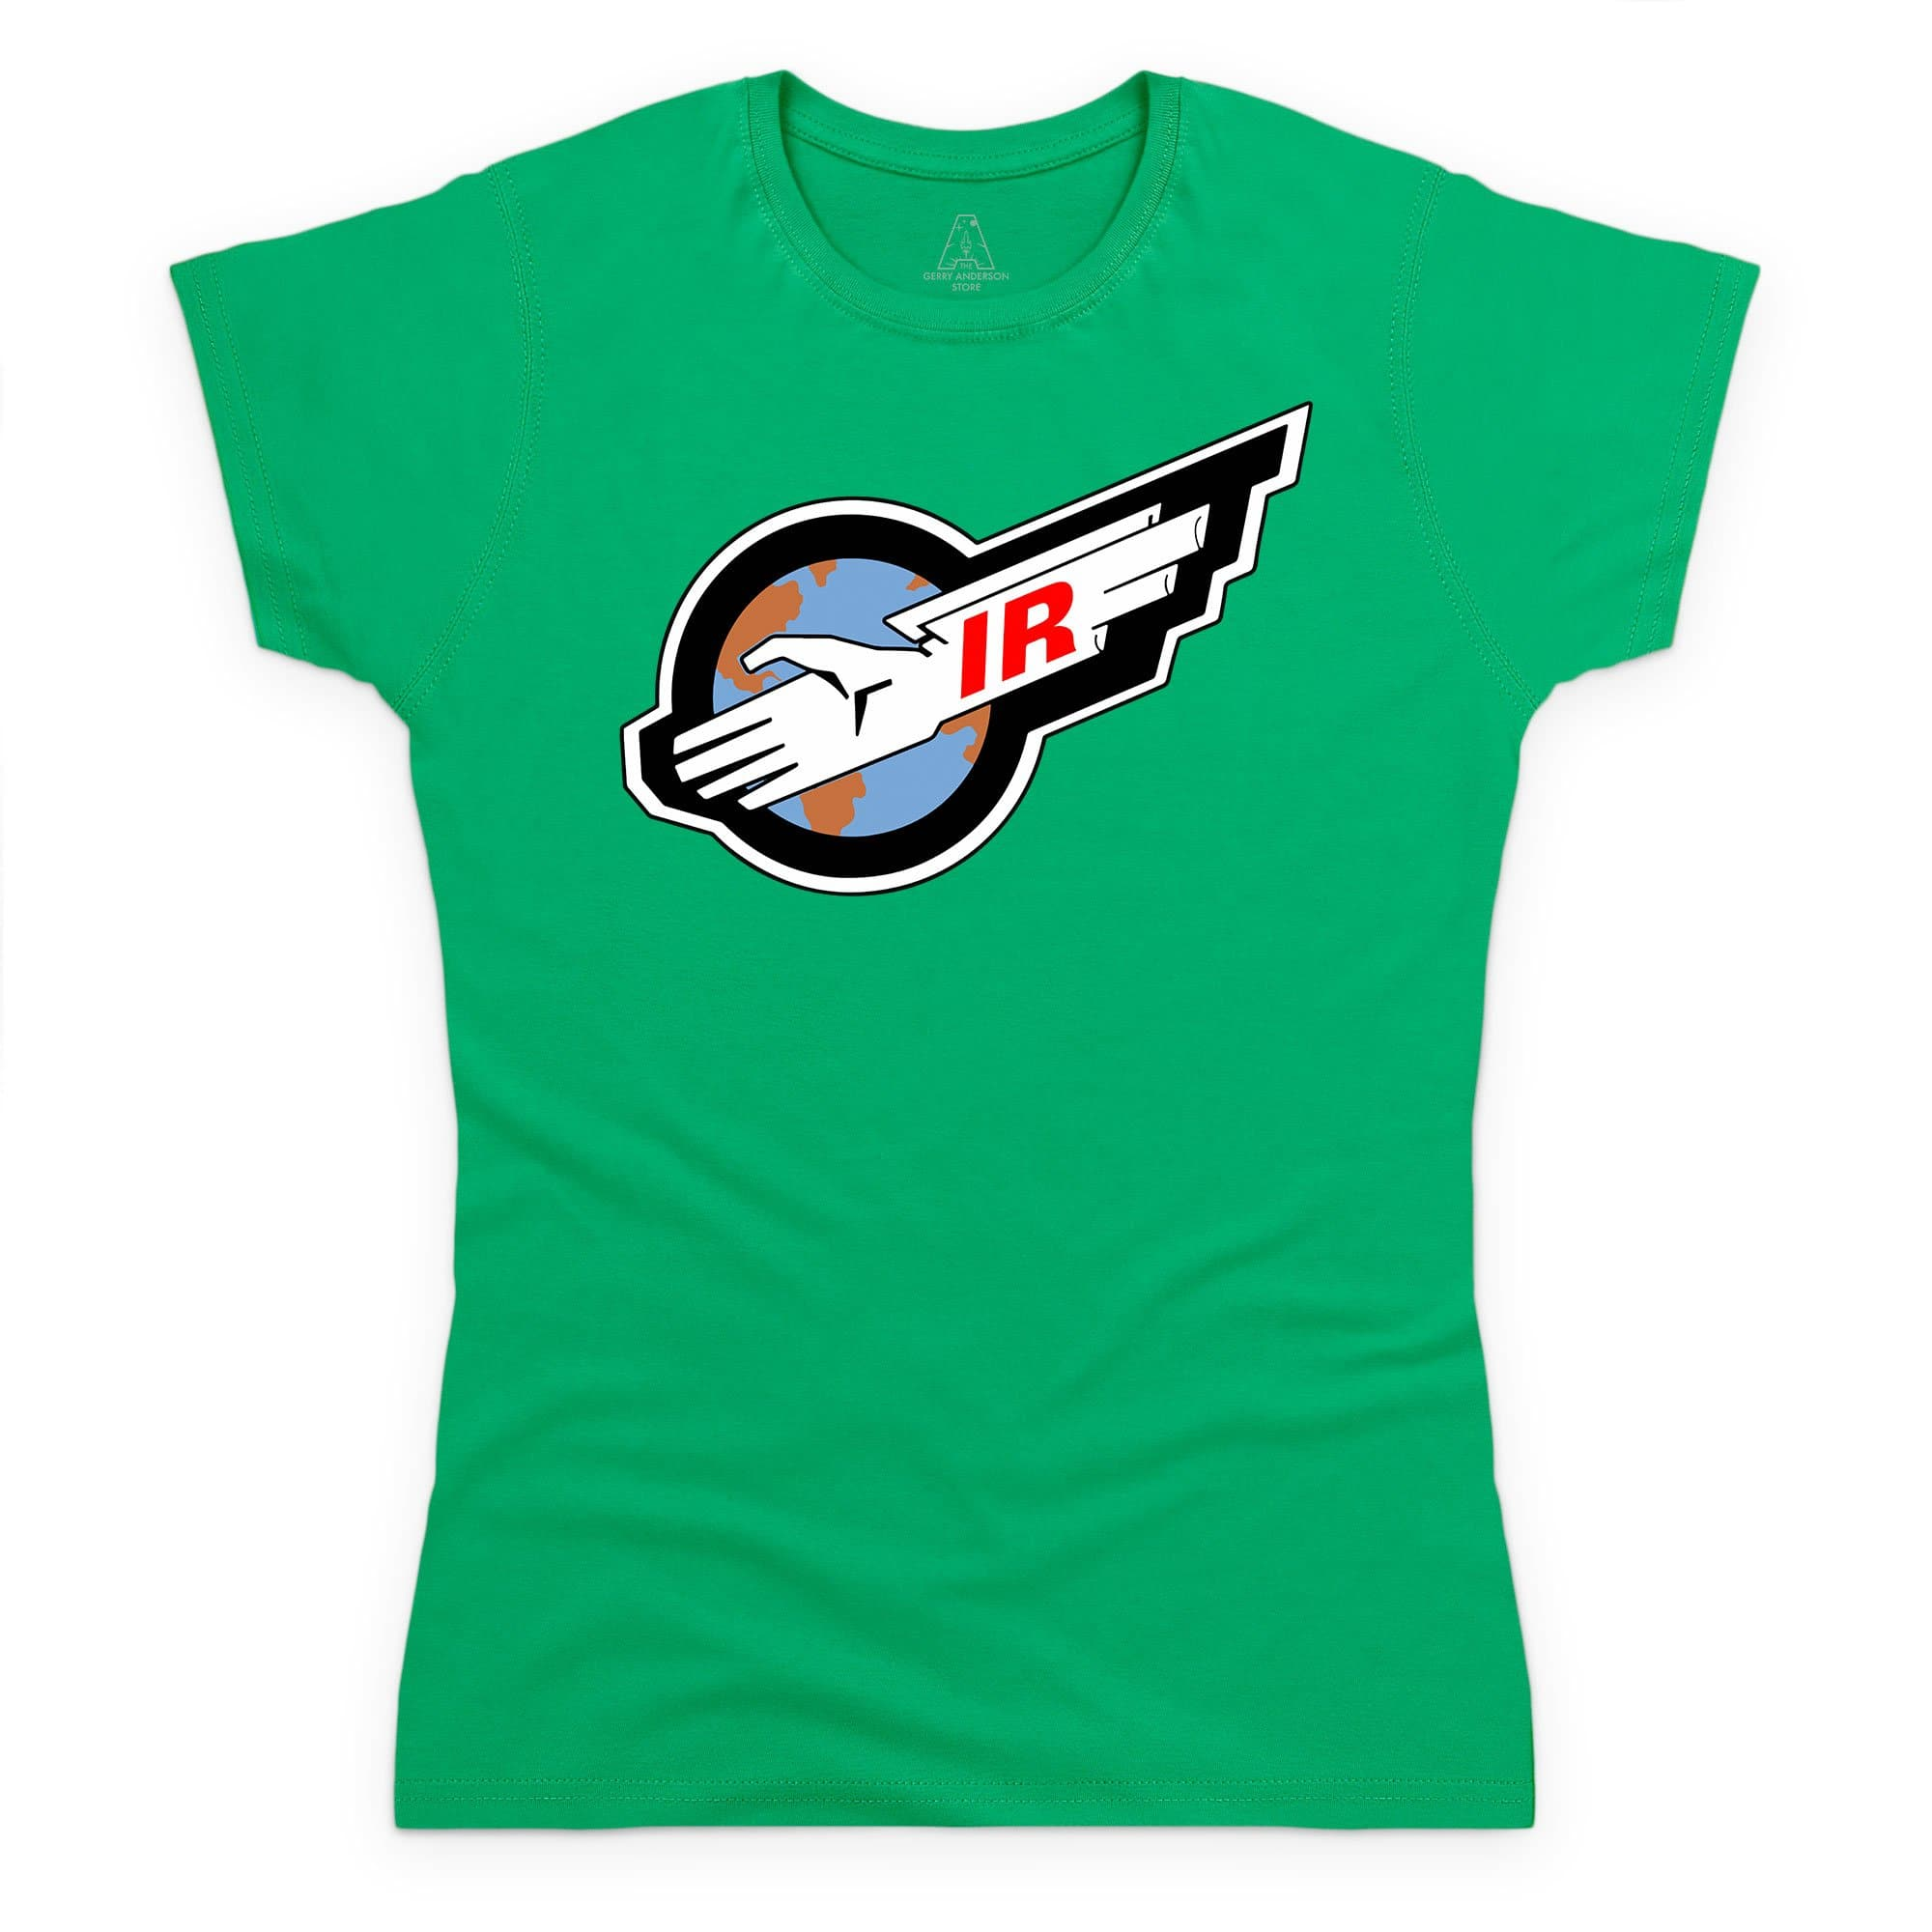 International Rescue/Thunderbirds Women's T-Shirt [Official & Exclusive] - The Gerry Anderson Store